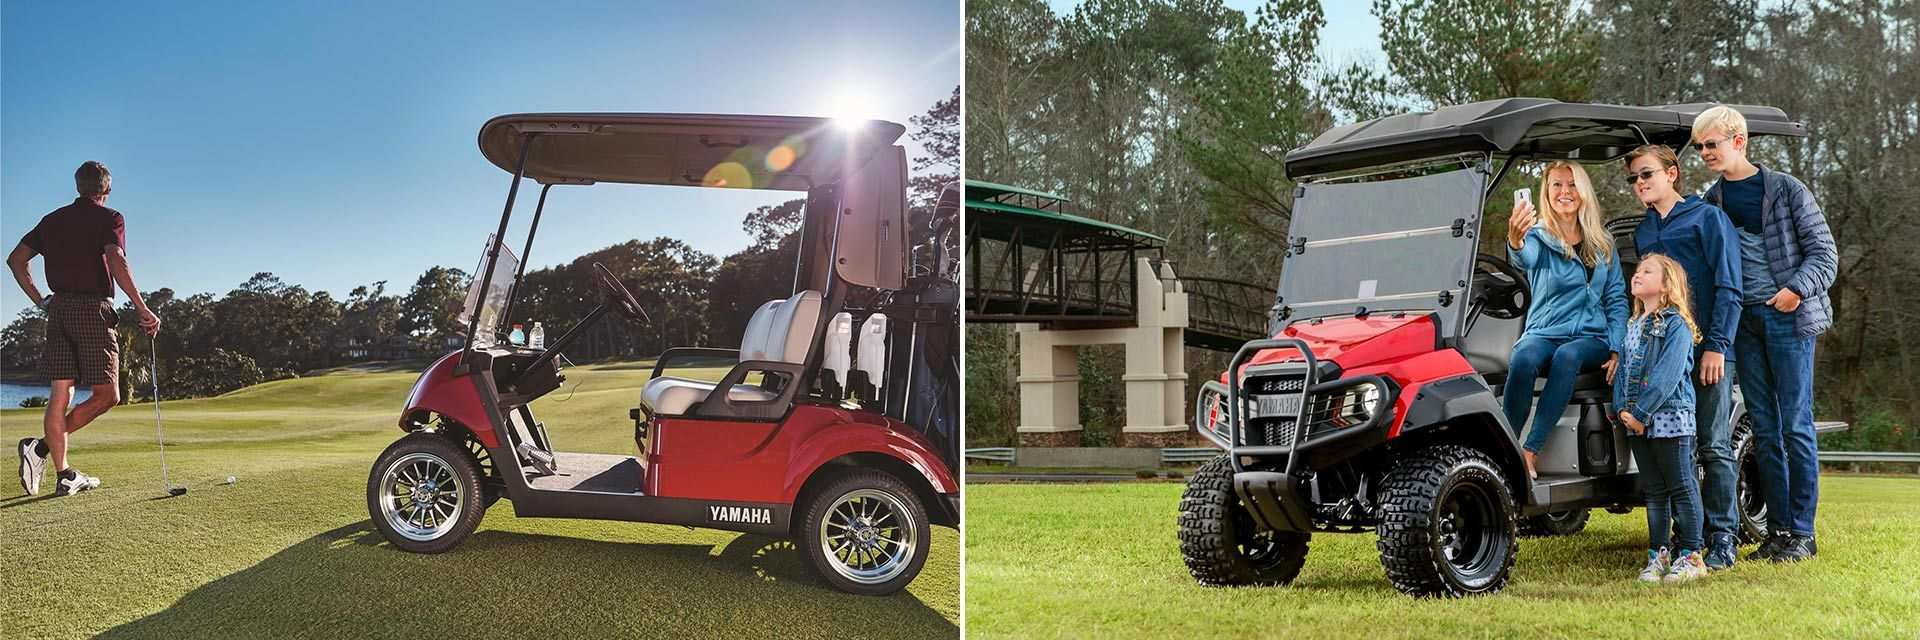 hight resolution of two images of a yamaha golf cart on the golf range and off